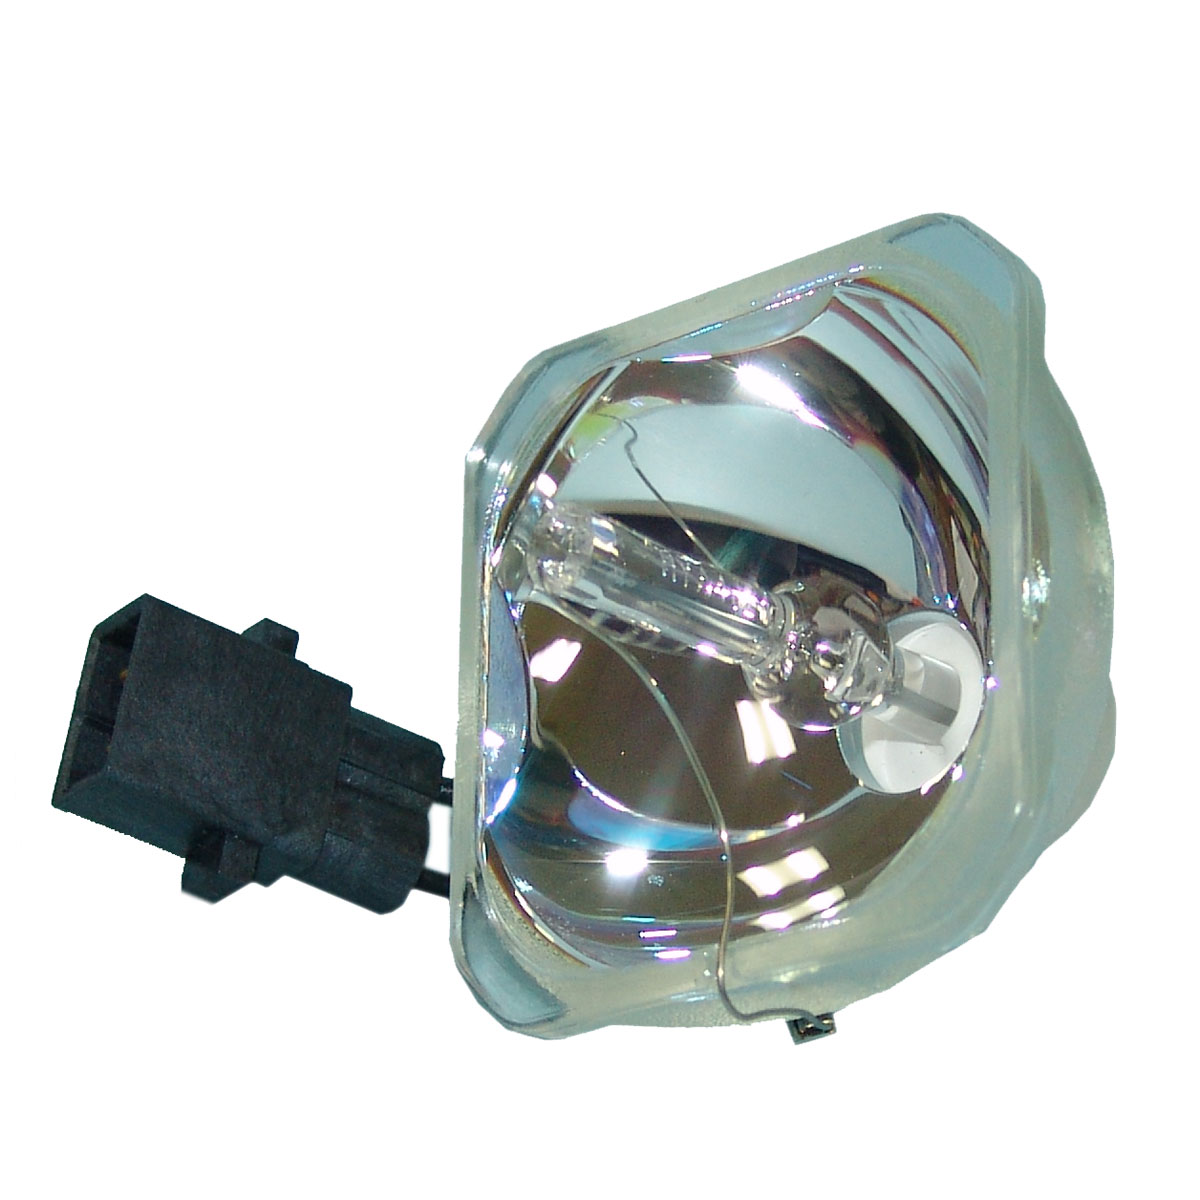 Lutema Platinum for Epson EMP-TW4000 Projector Lamp with Housing - image 5 of 5